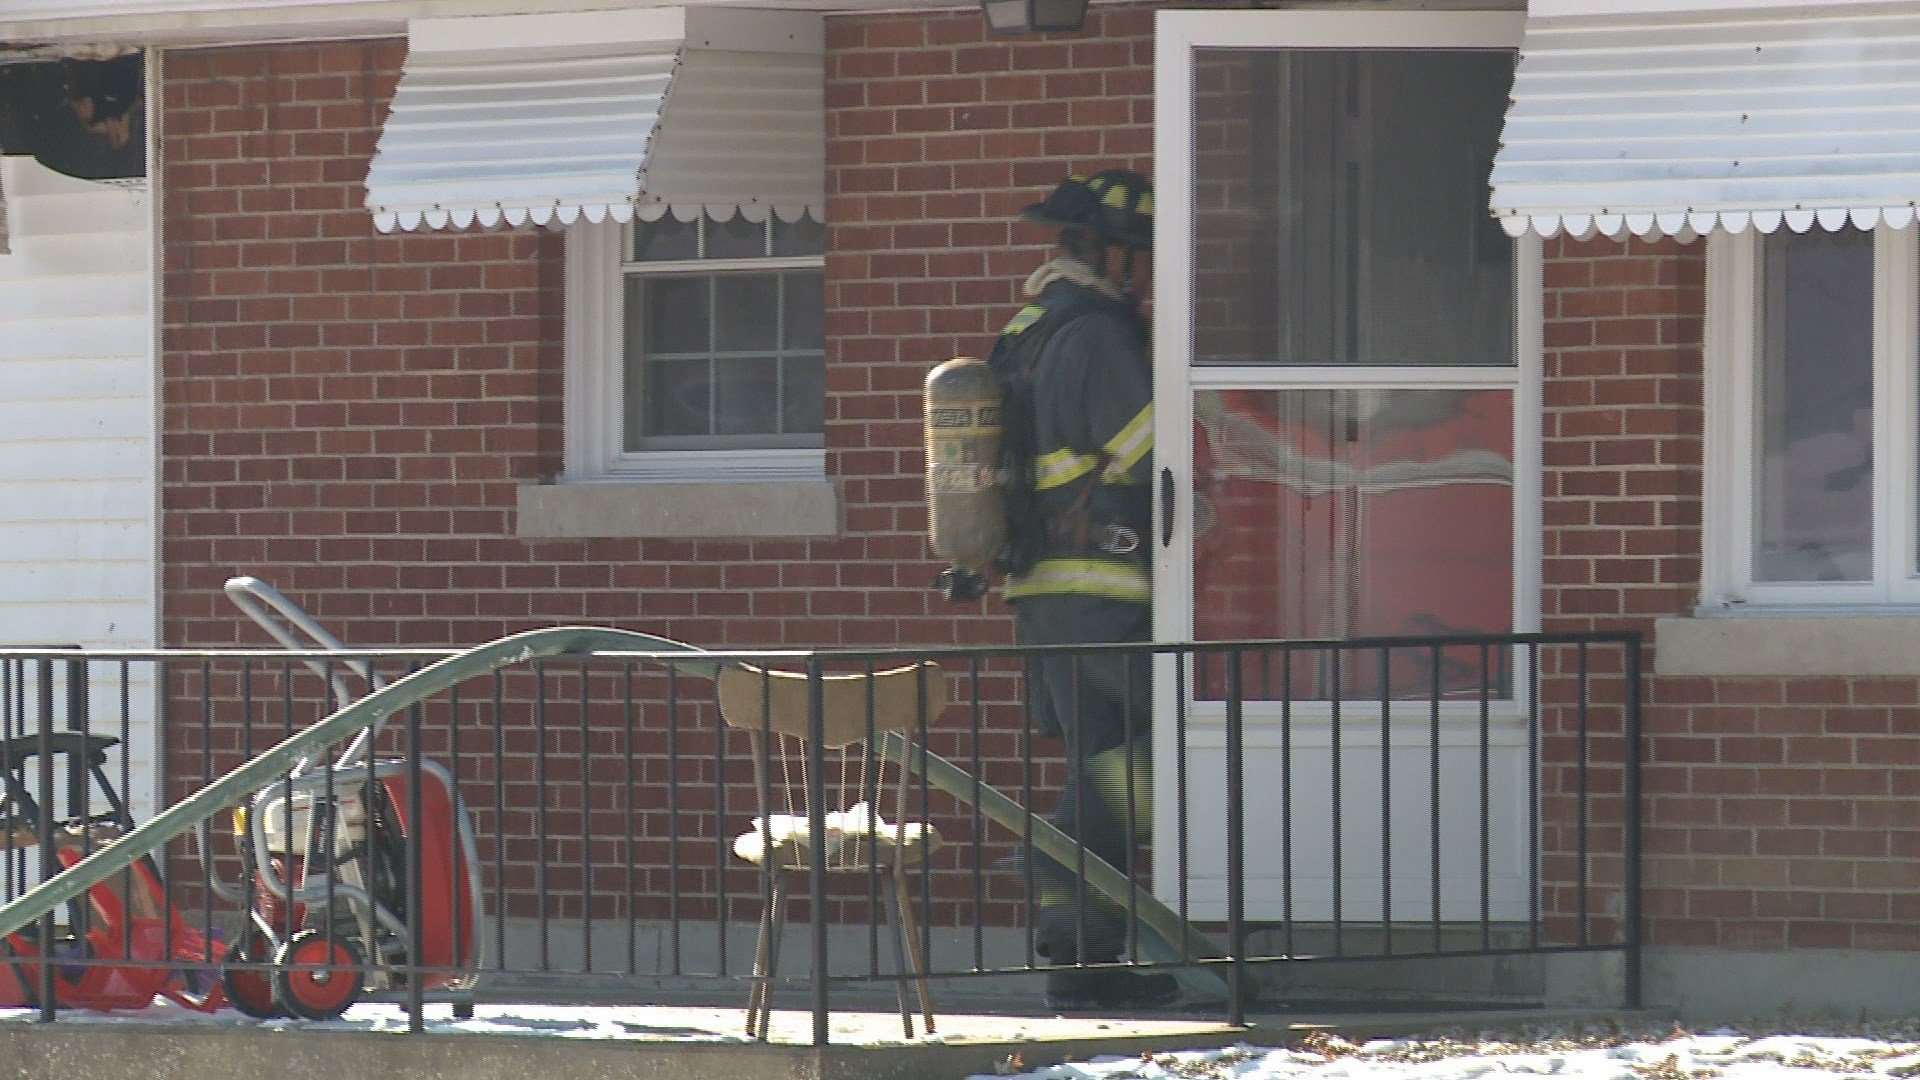 Firefighter goes into the home.